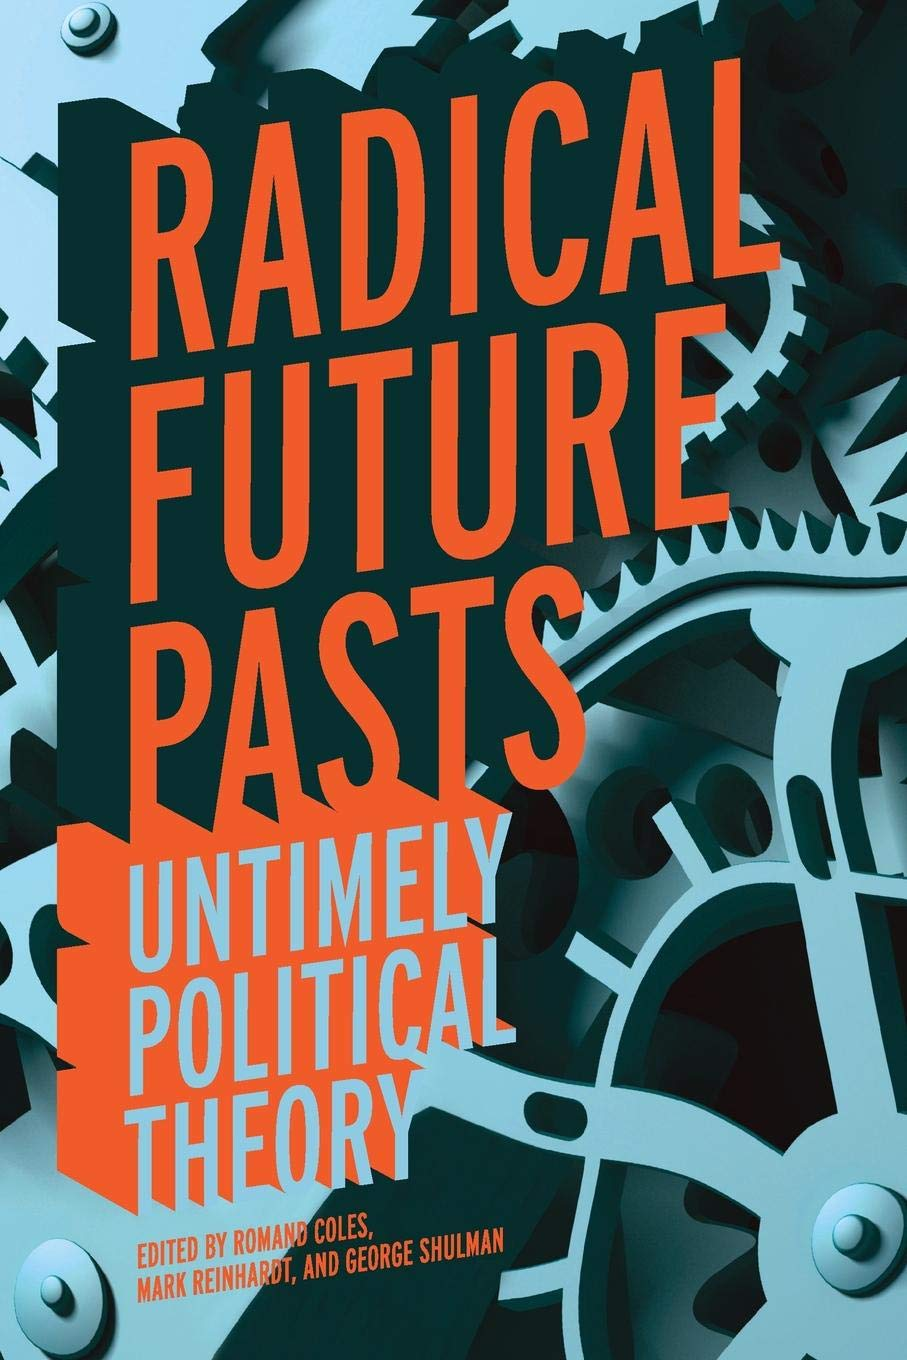 Download Radical Future Pasts: Untimely Political Theory PDF ePub fb2 book